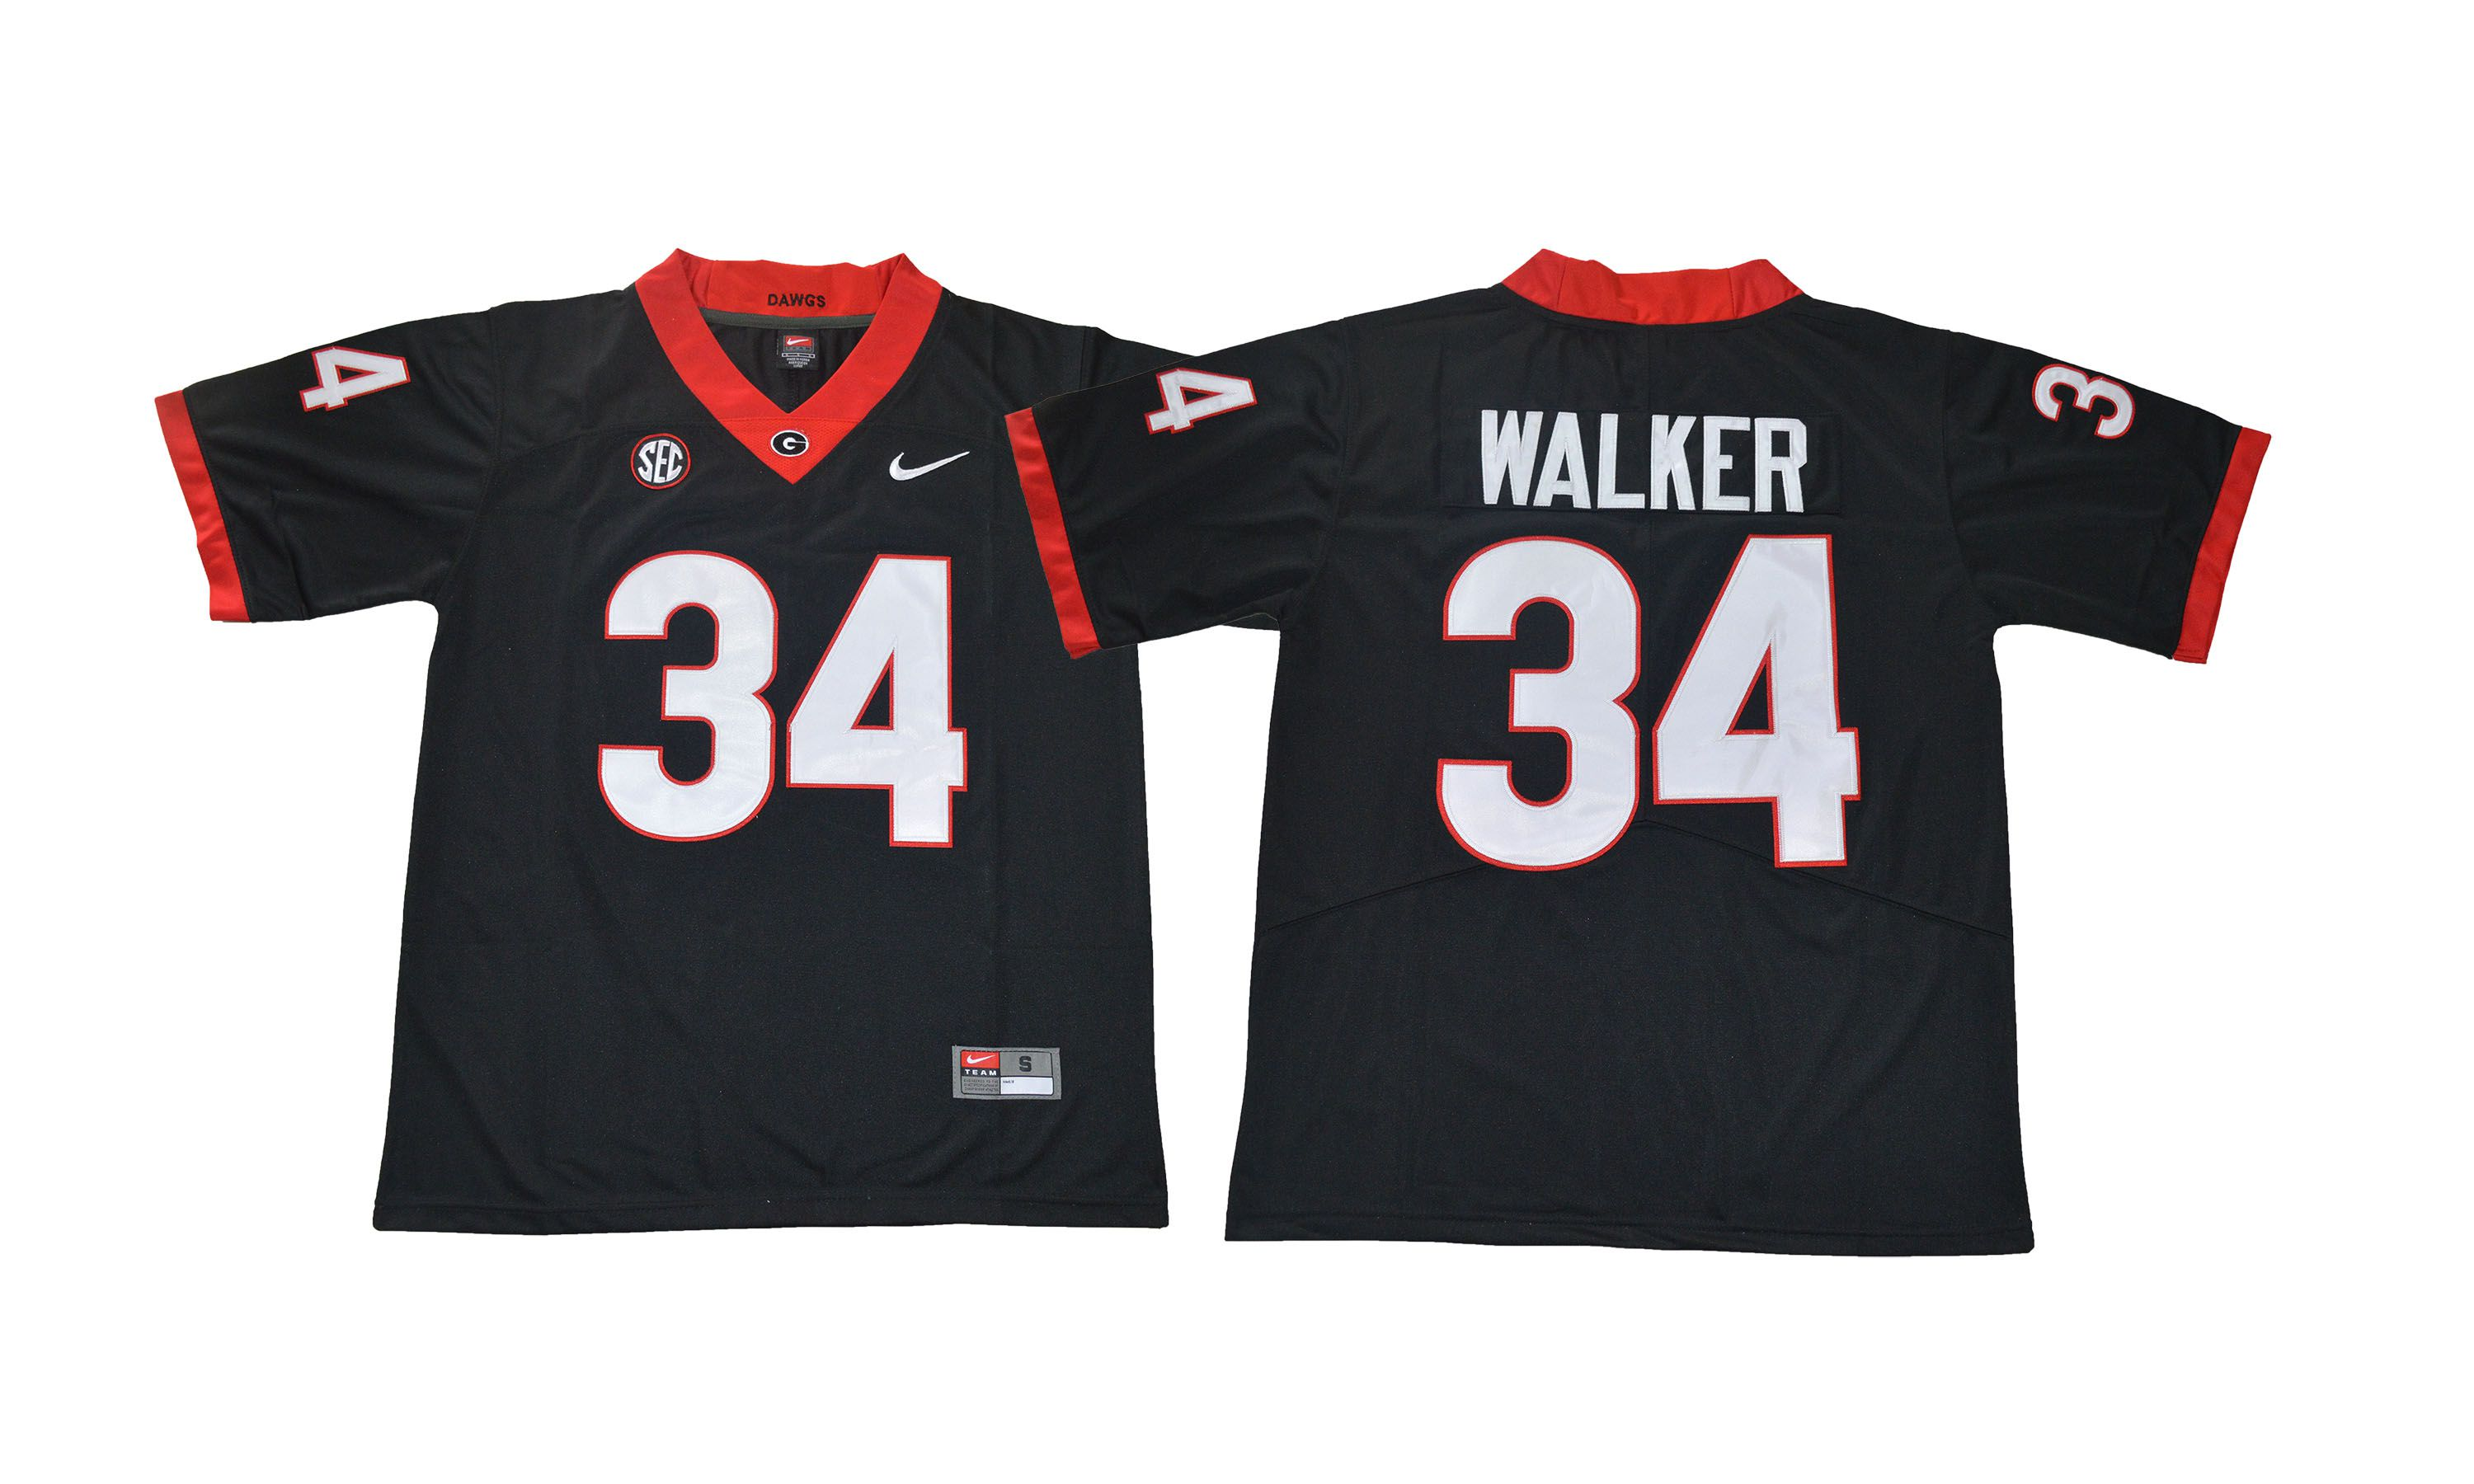 Men NCAA 2017 Georgia Bulldogs 34 Walker black jersey